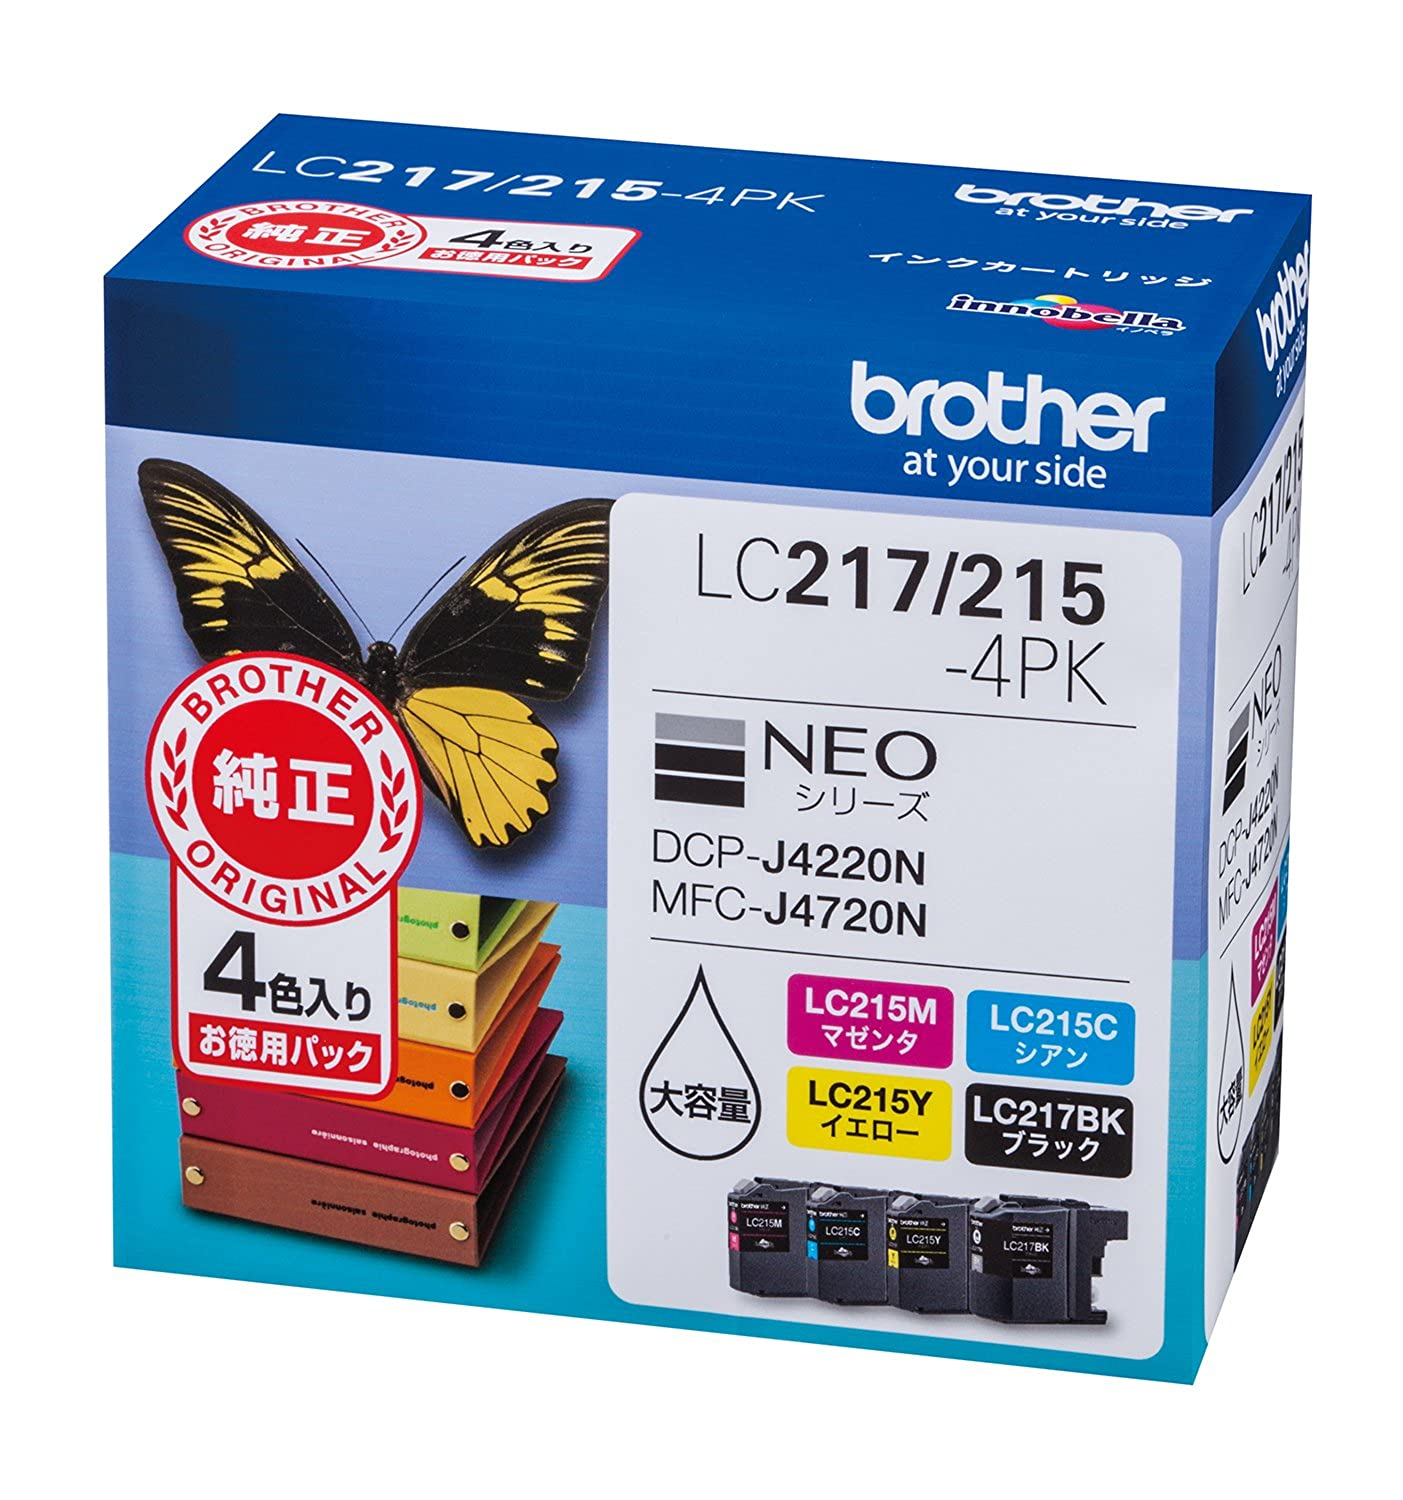 brother 純正インクカートリッジ大容量 4色パック LC217/215-4PK